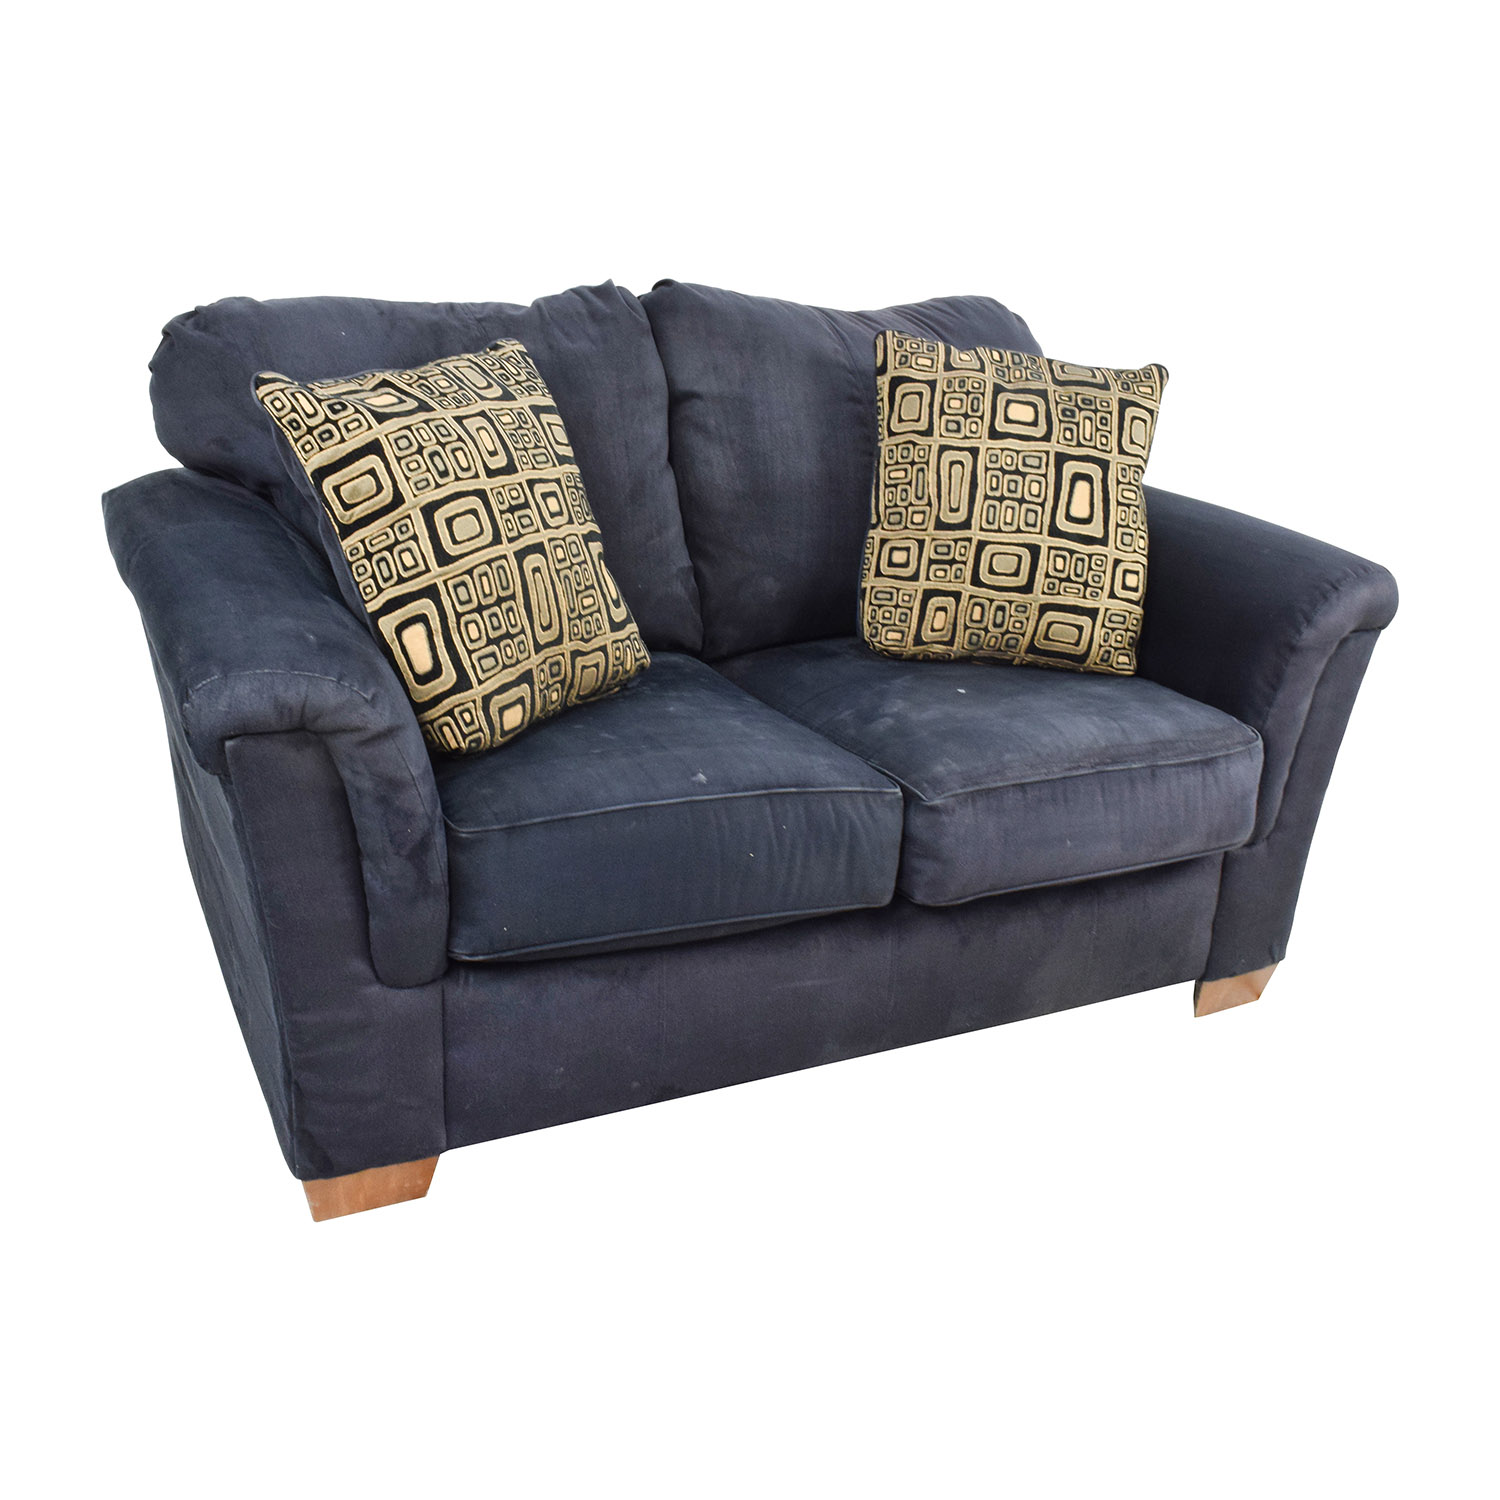 87 Off Ashley Furniture Ashley Furniture Janley Loveseat Sofas